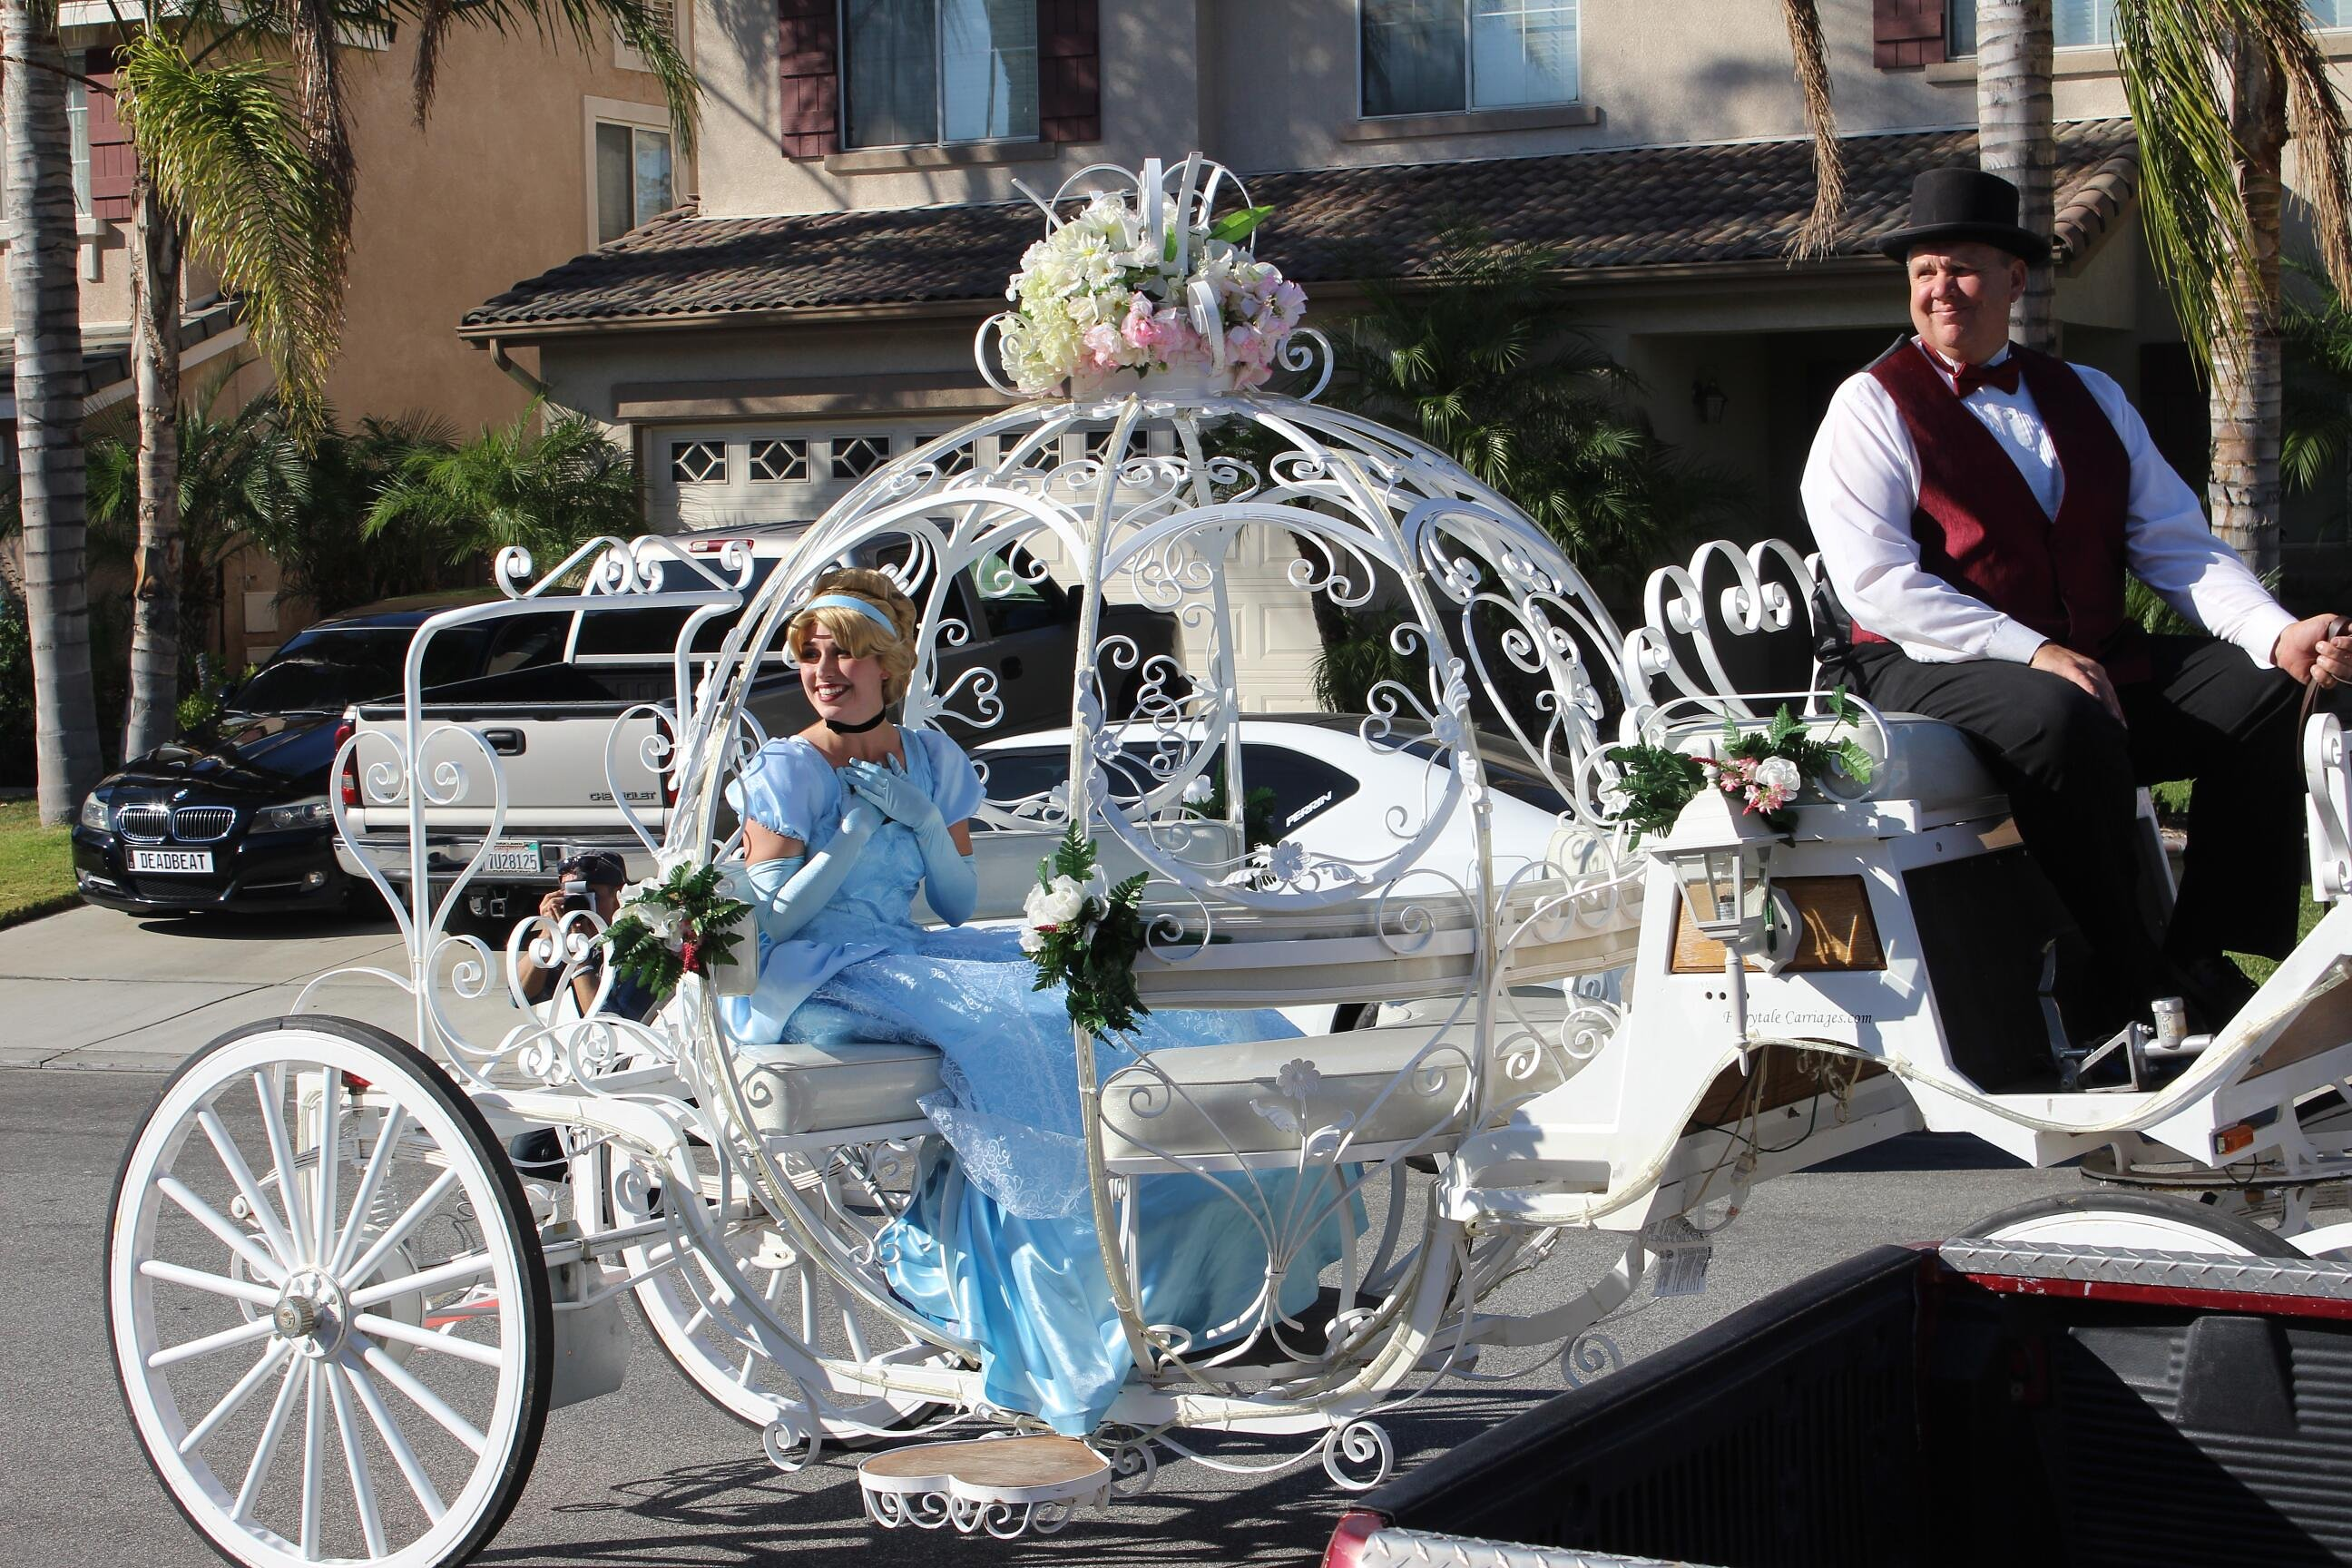 Cinderella Party Character Carriage